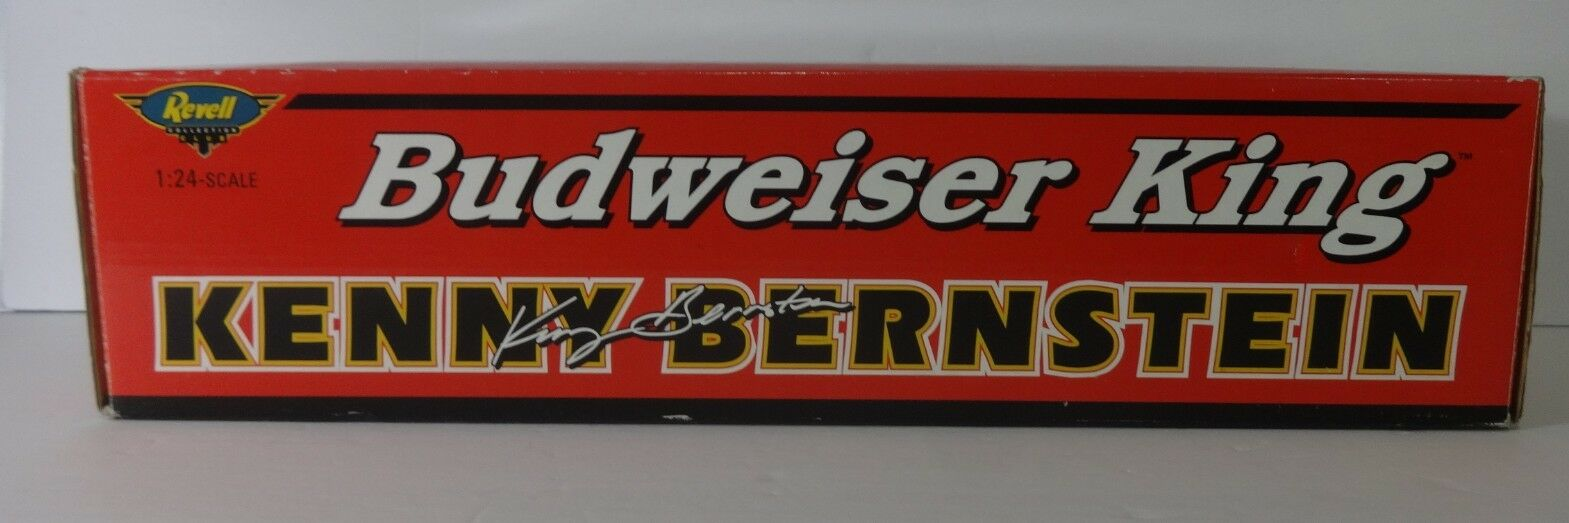 KENNY BERNSTEIN Budweiser King 1 24 Dragster 1 of 2000 Revell Model